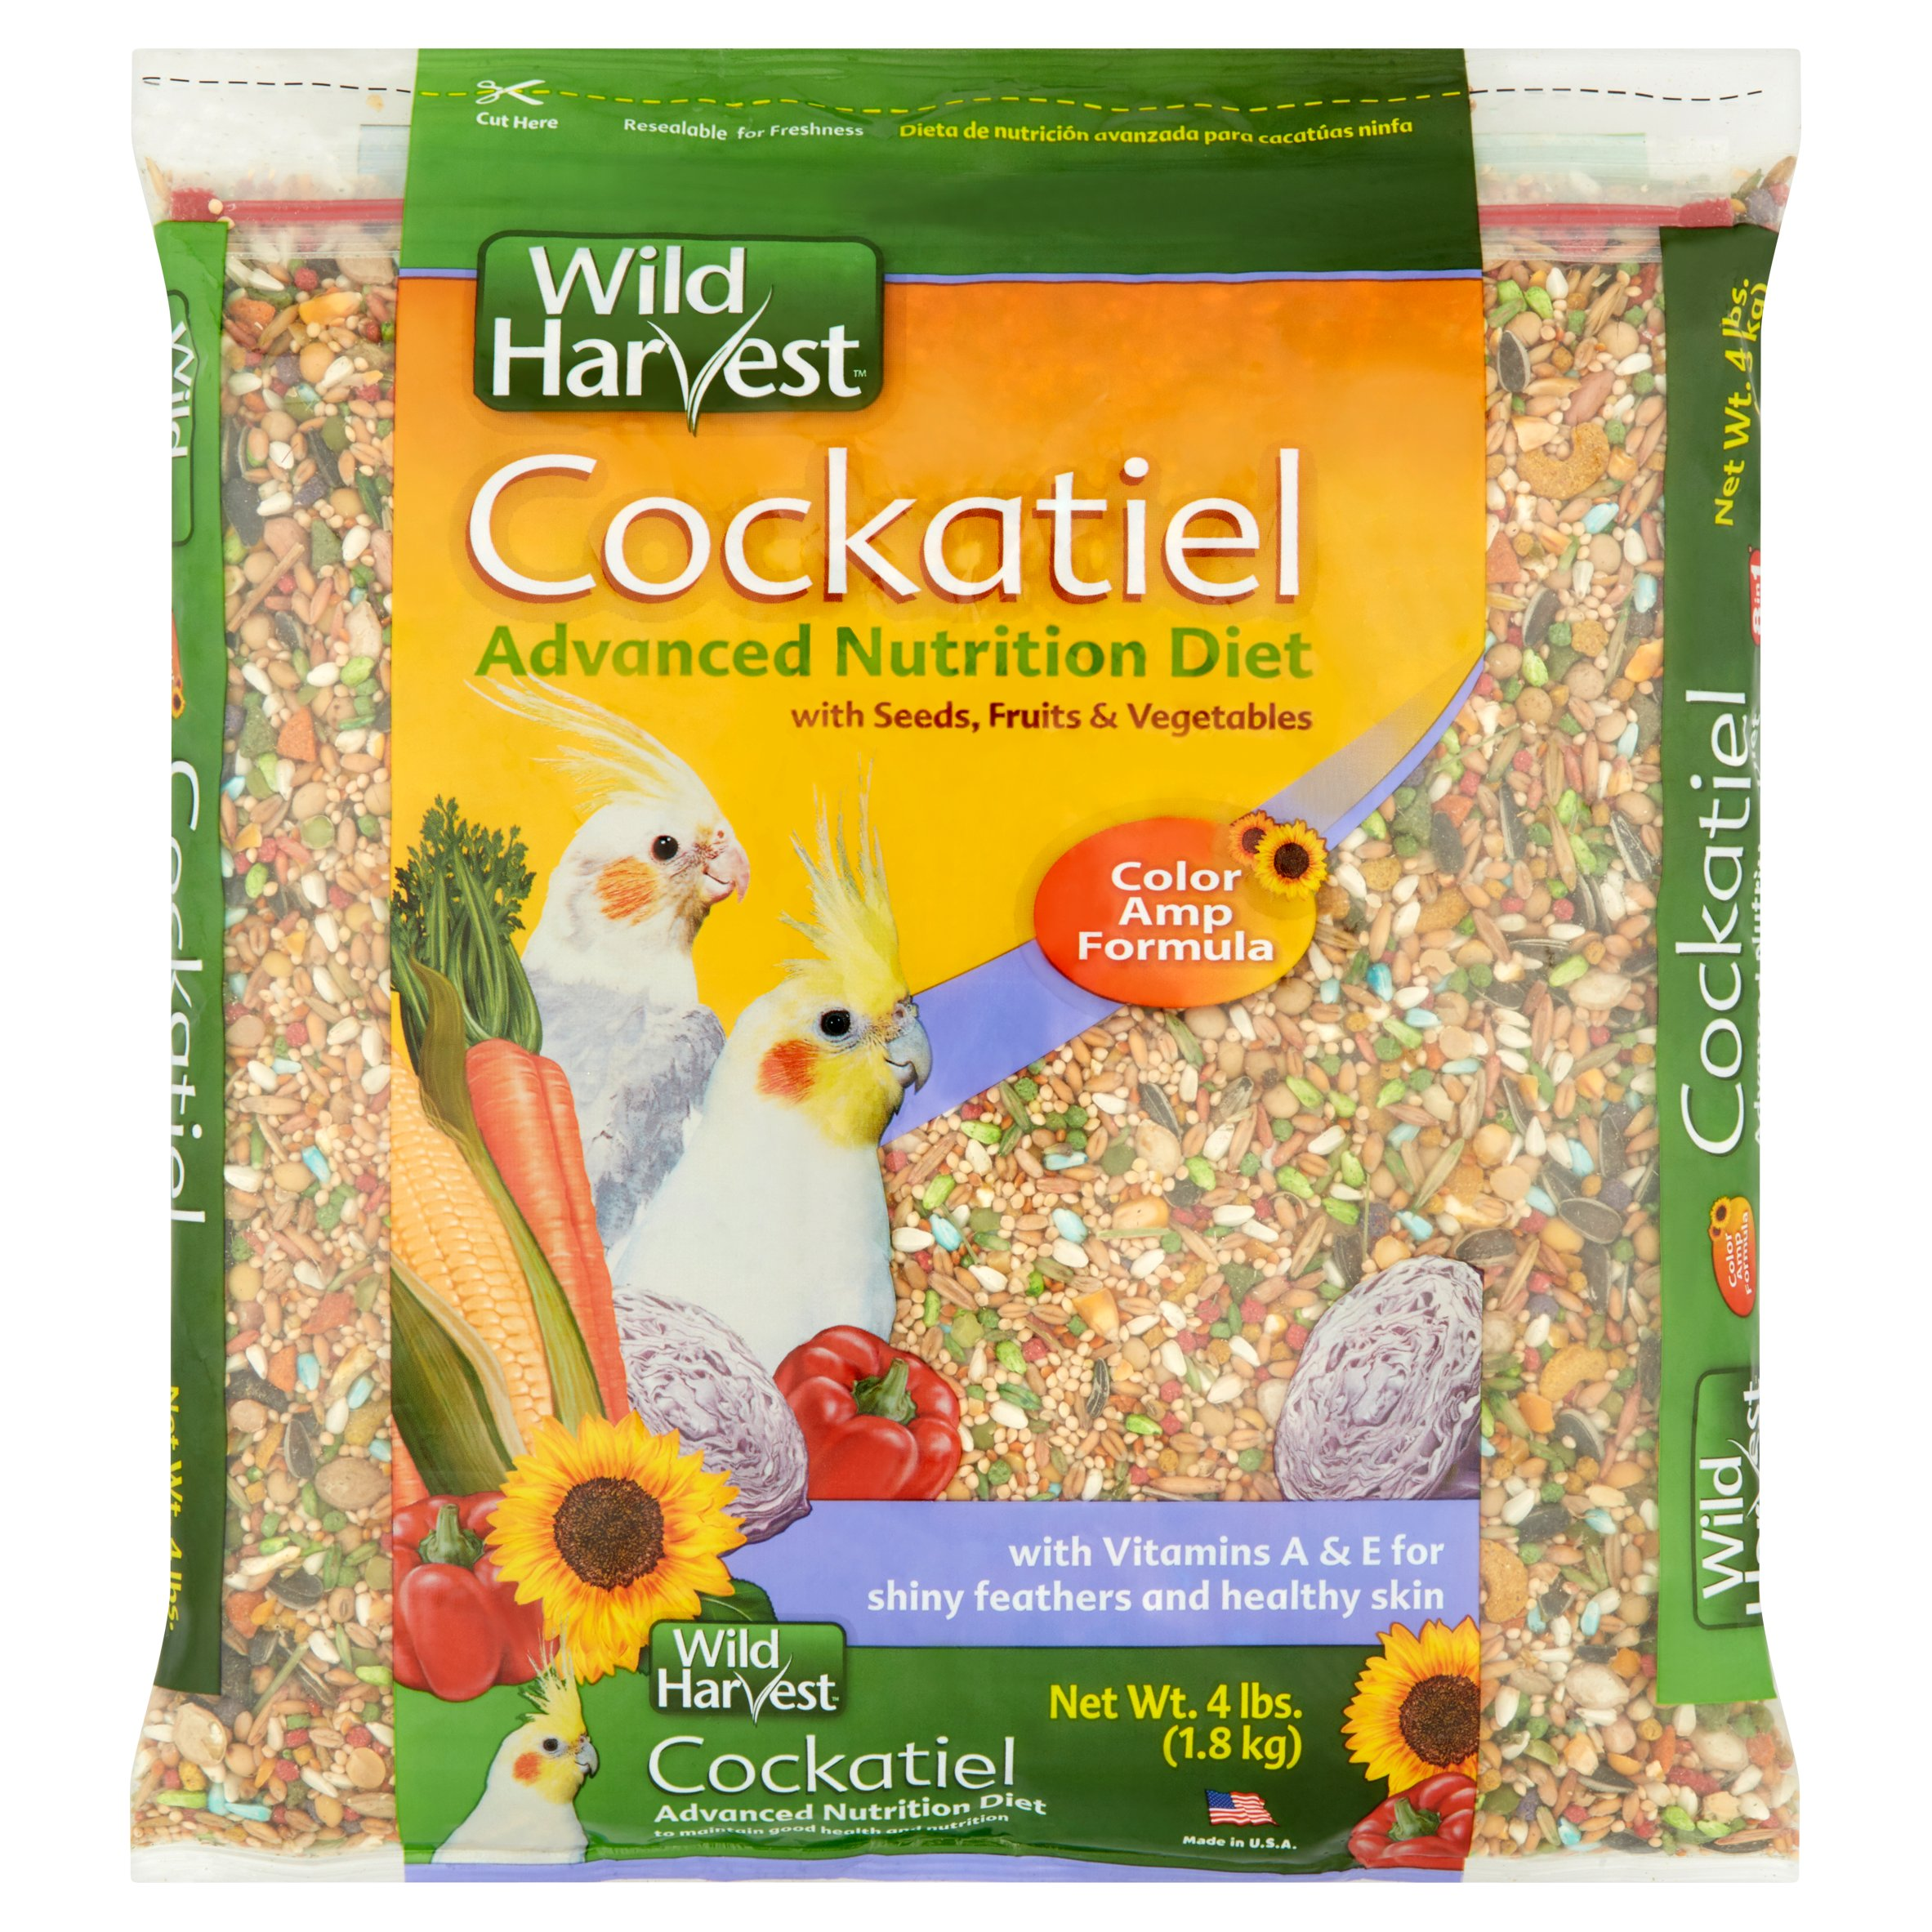 Wild Harvest Cockatiel Advanced Nutrition Diet Blend, 4 lb